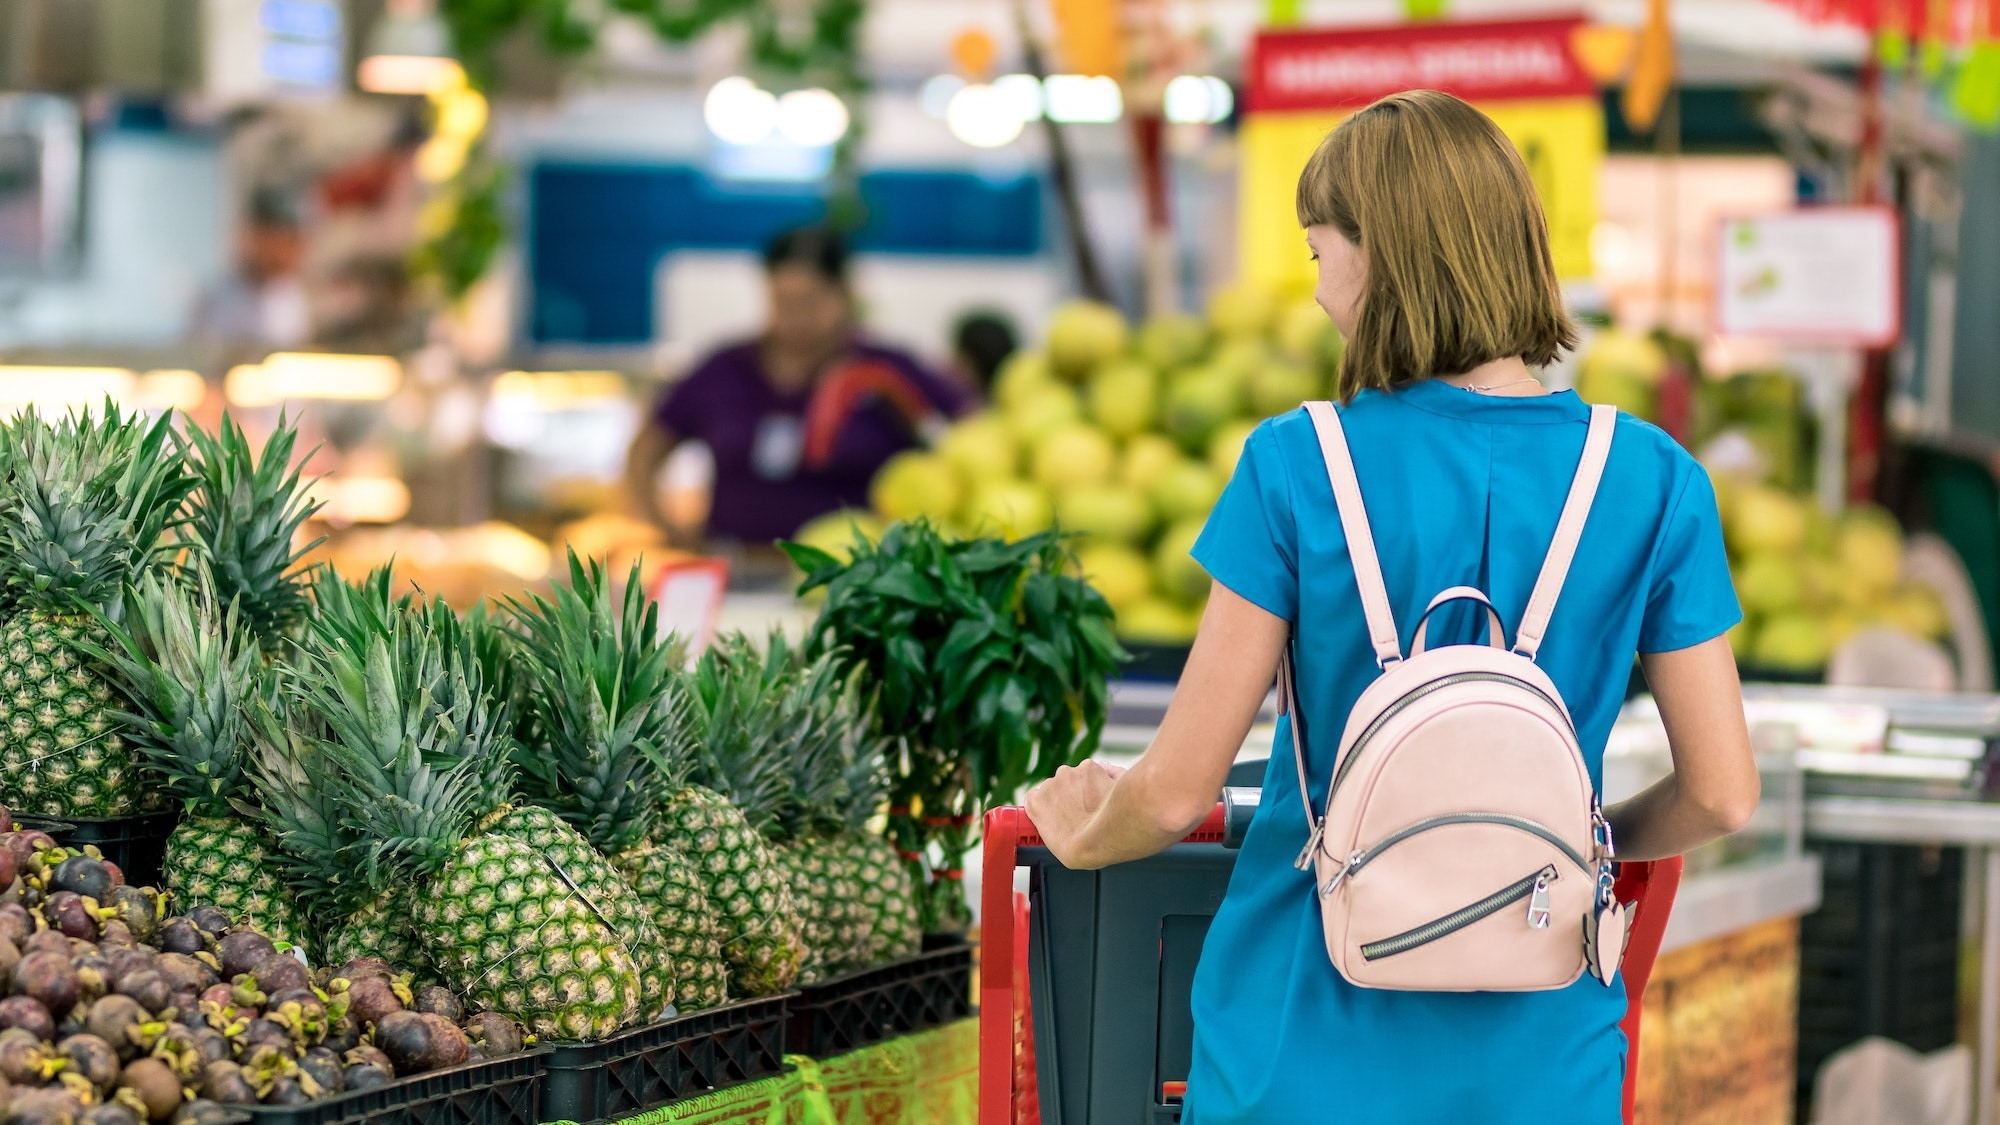 The best credit cards to earn points at supermarkets